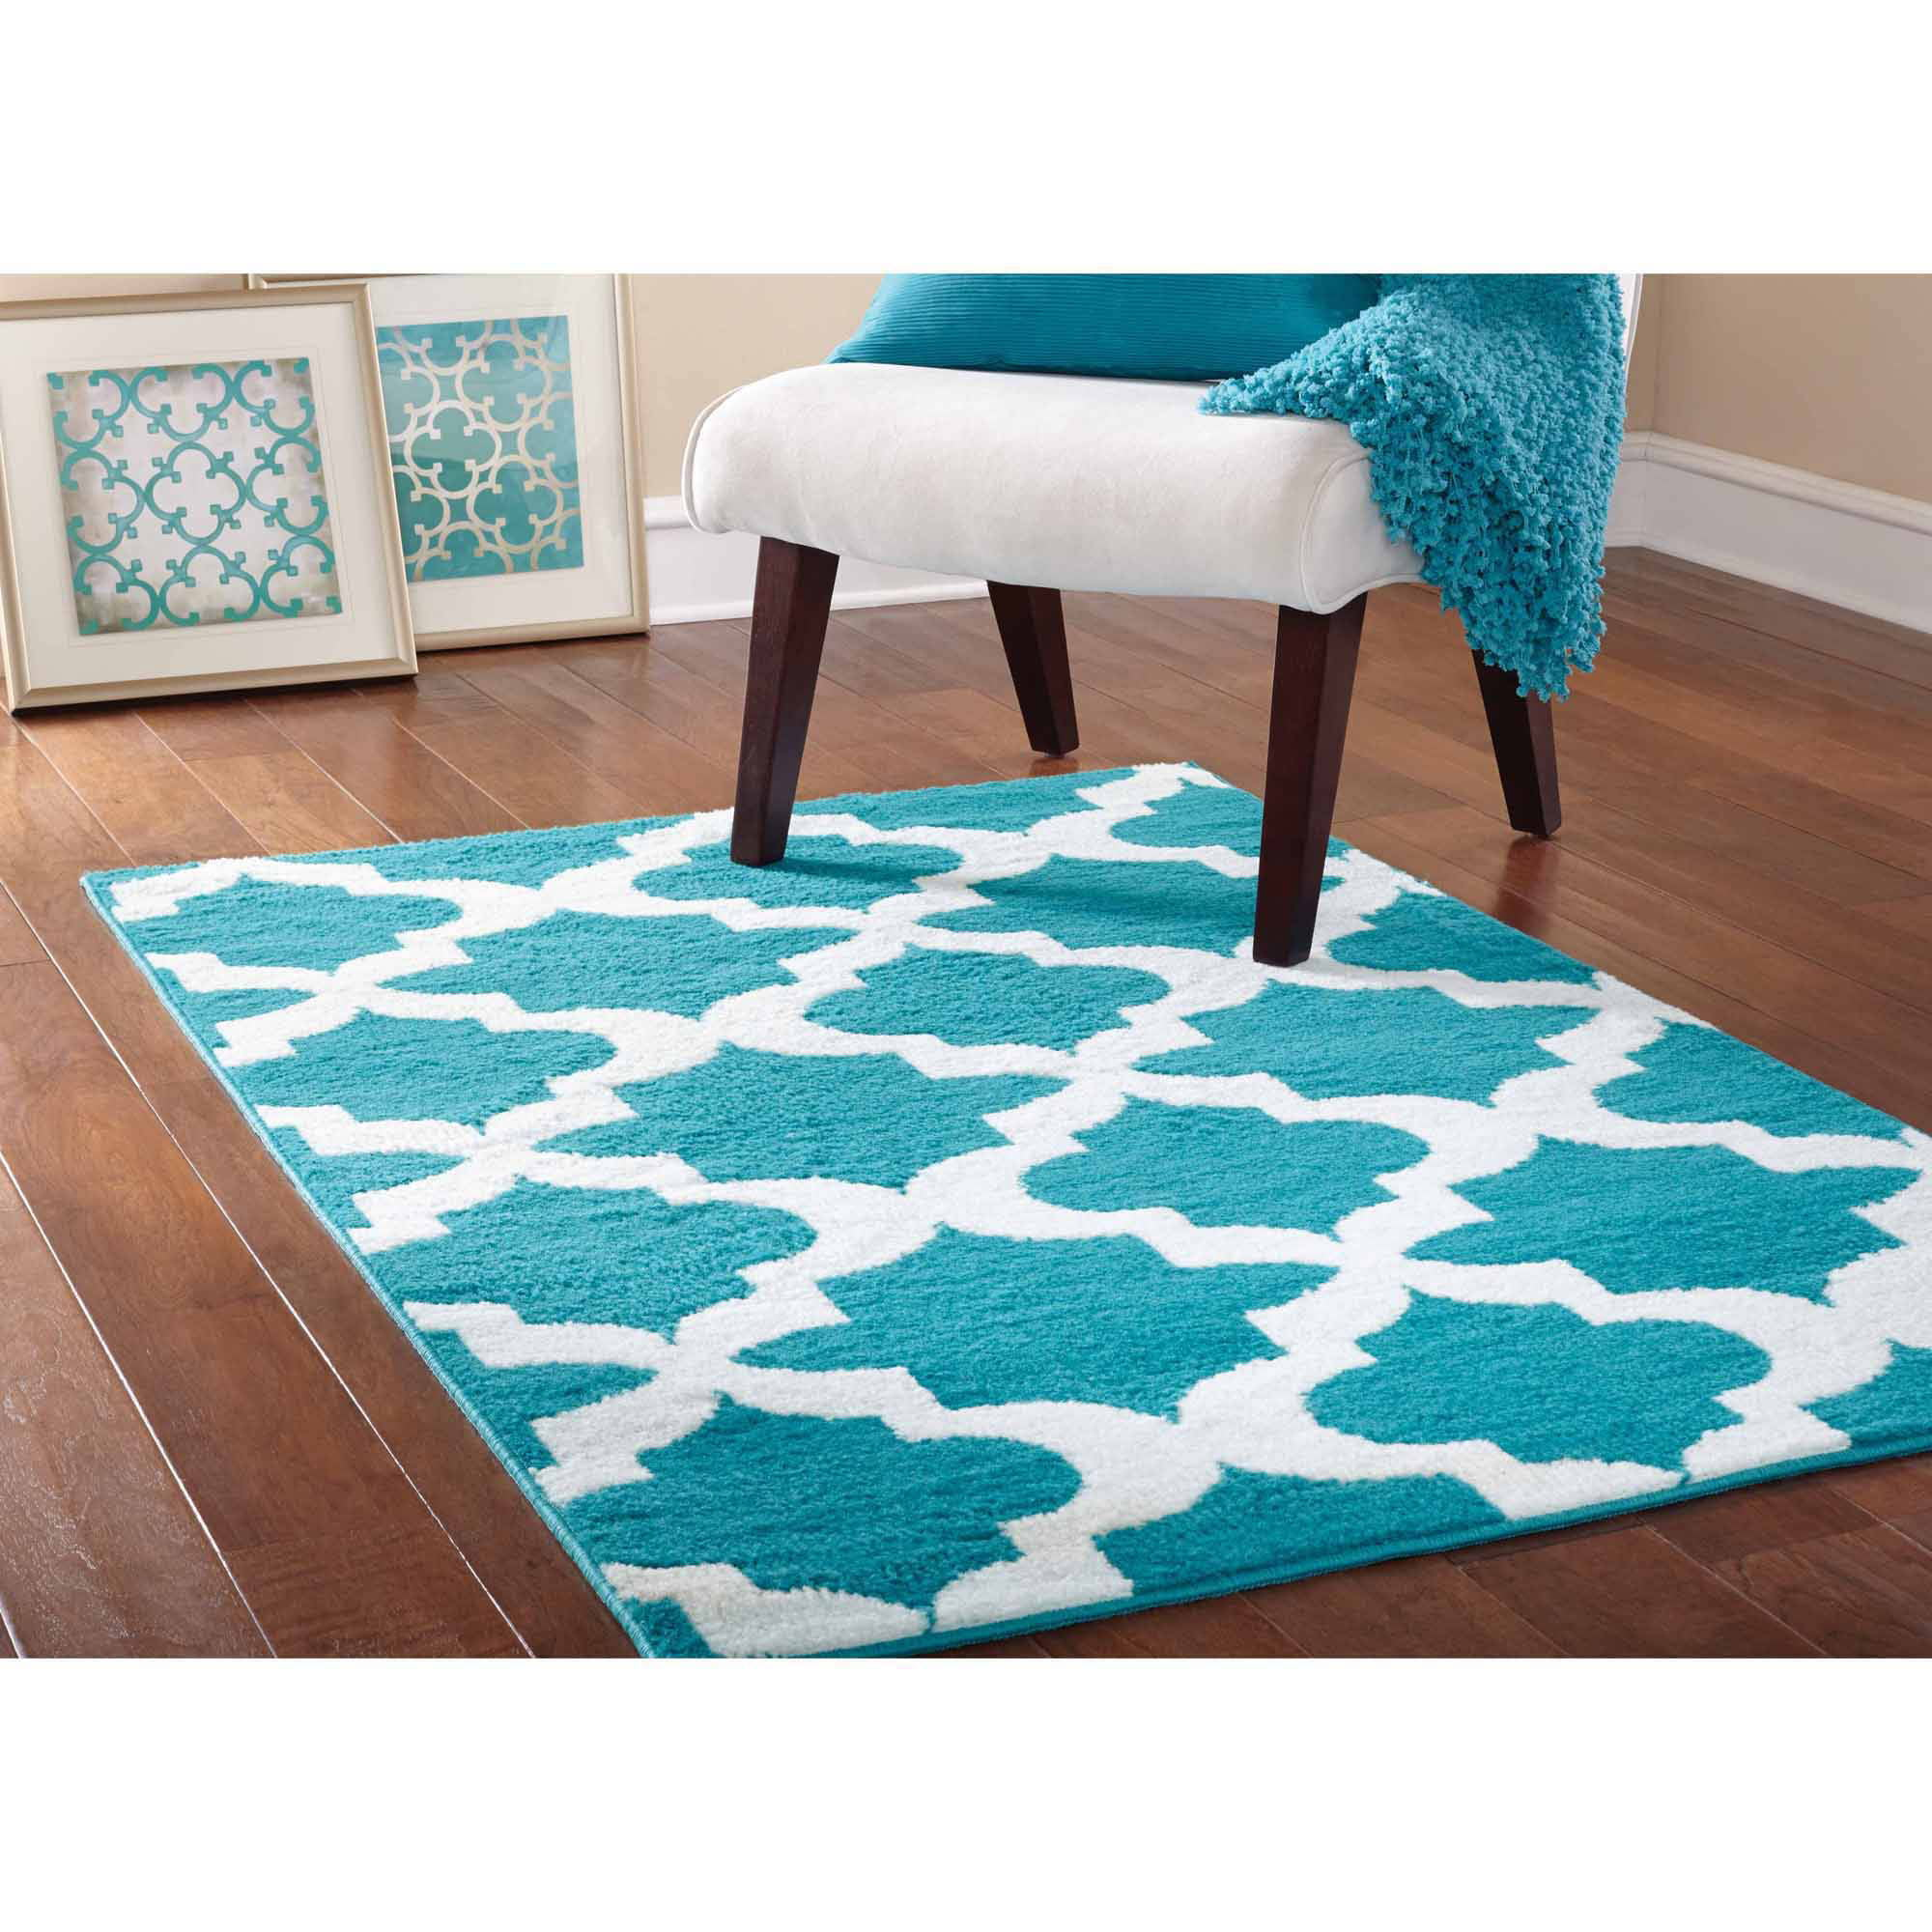 Mainstays Frame Border Area Rugs Or Runner Available In